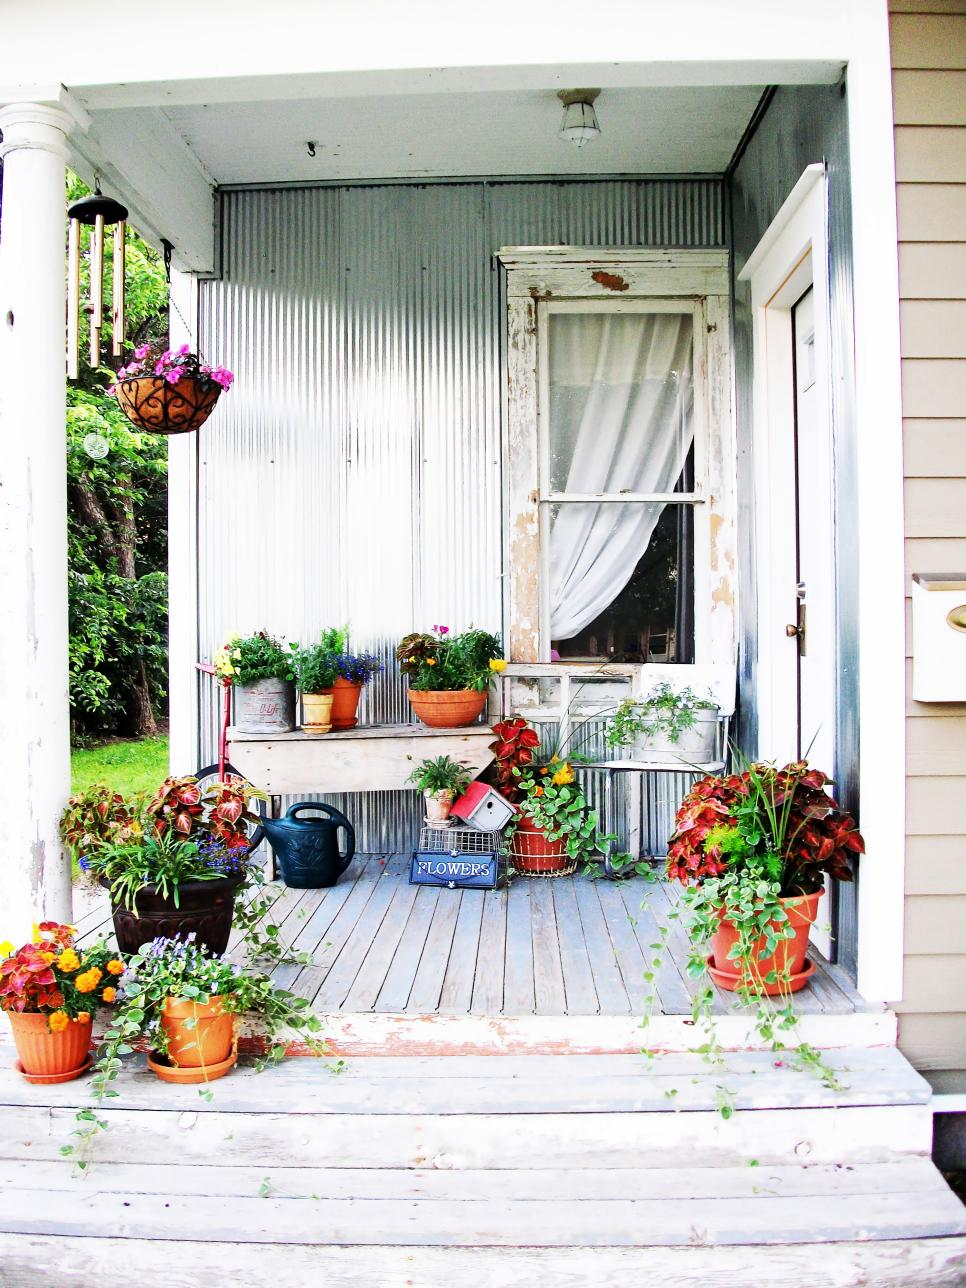 Shabby chic decorating ideas for porches and gardens hgtv for Patio deck decorating ideas